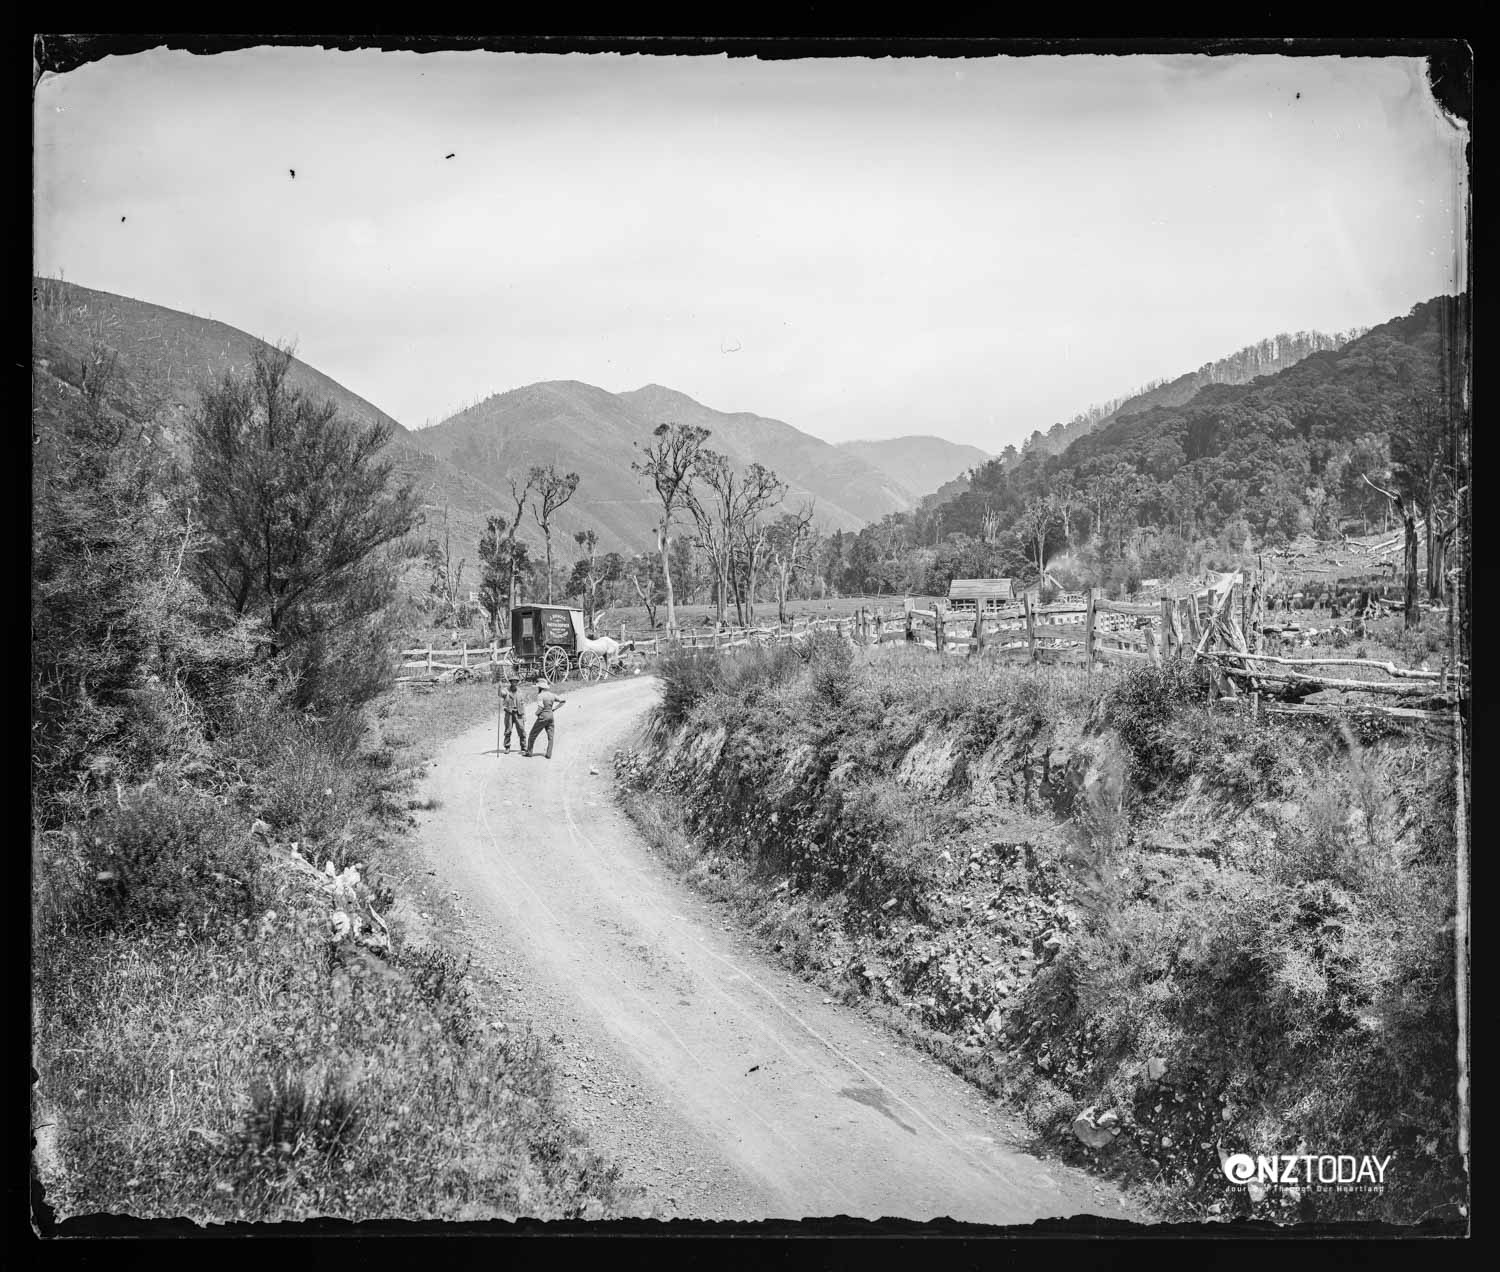 Featherston side of the Remutaka [Rimutaka] Hill, from the cutting at Cave's Bridge. Two men are standing at the bend on a road which passes through fenced farmland on either side. Bragge's photography cart is parked behind the men at the side of the road